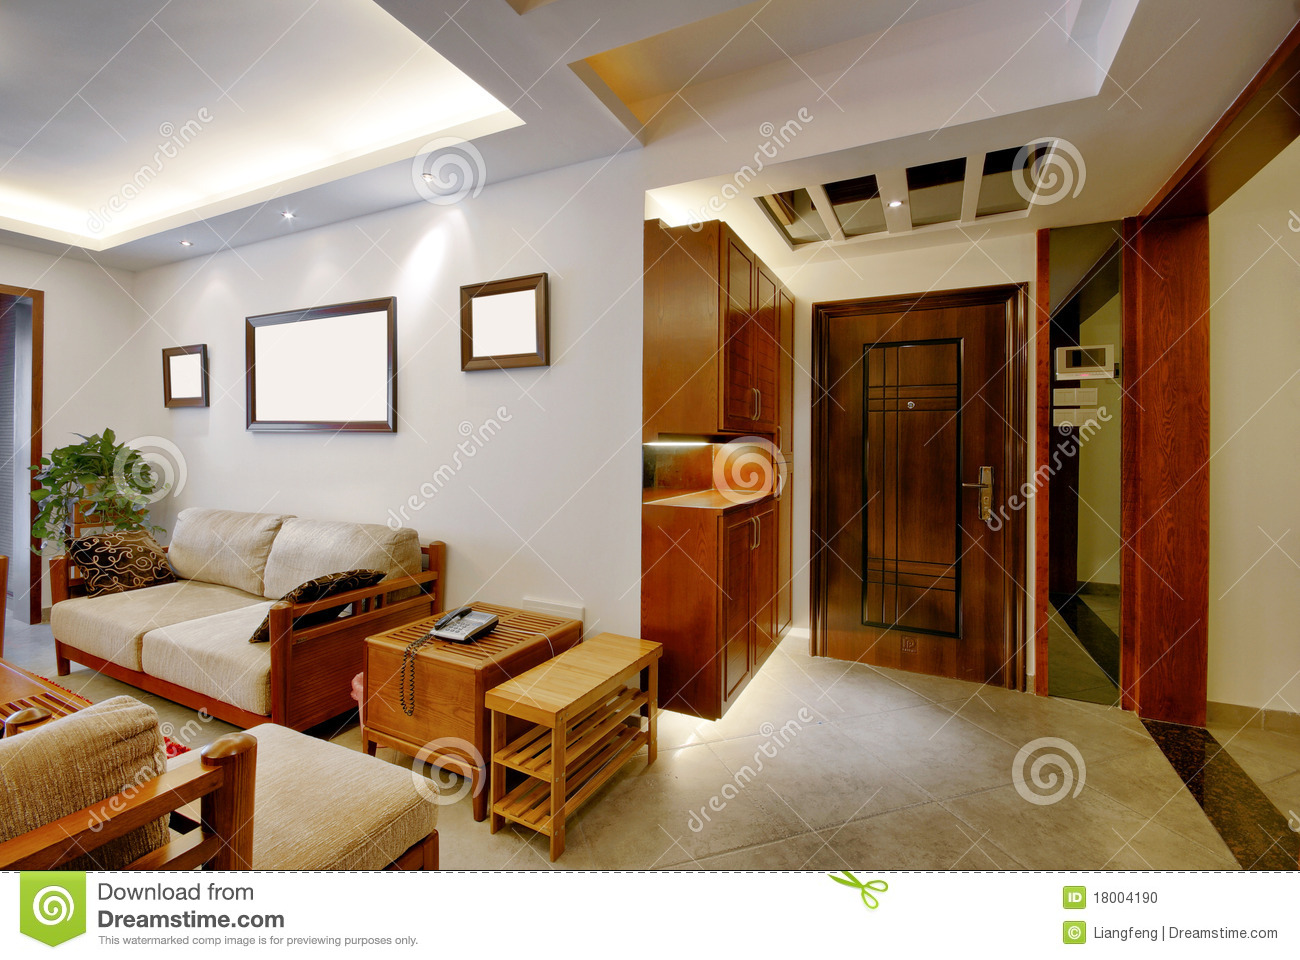 Beautiful home decor stock photo image of particulars 18004190 - Beautifully decorated bedrooms ...